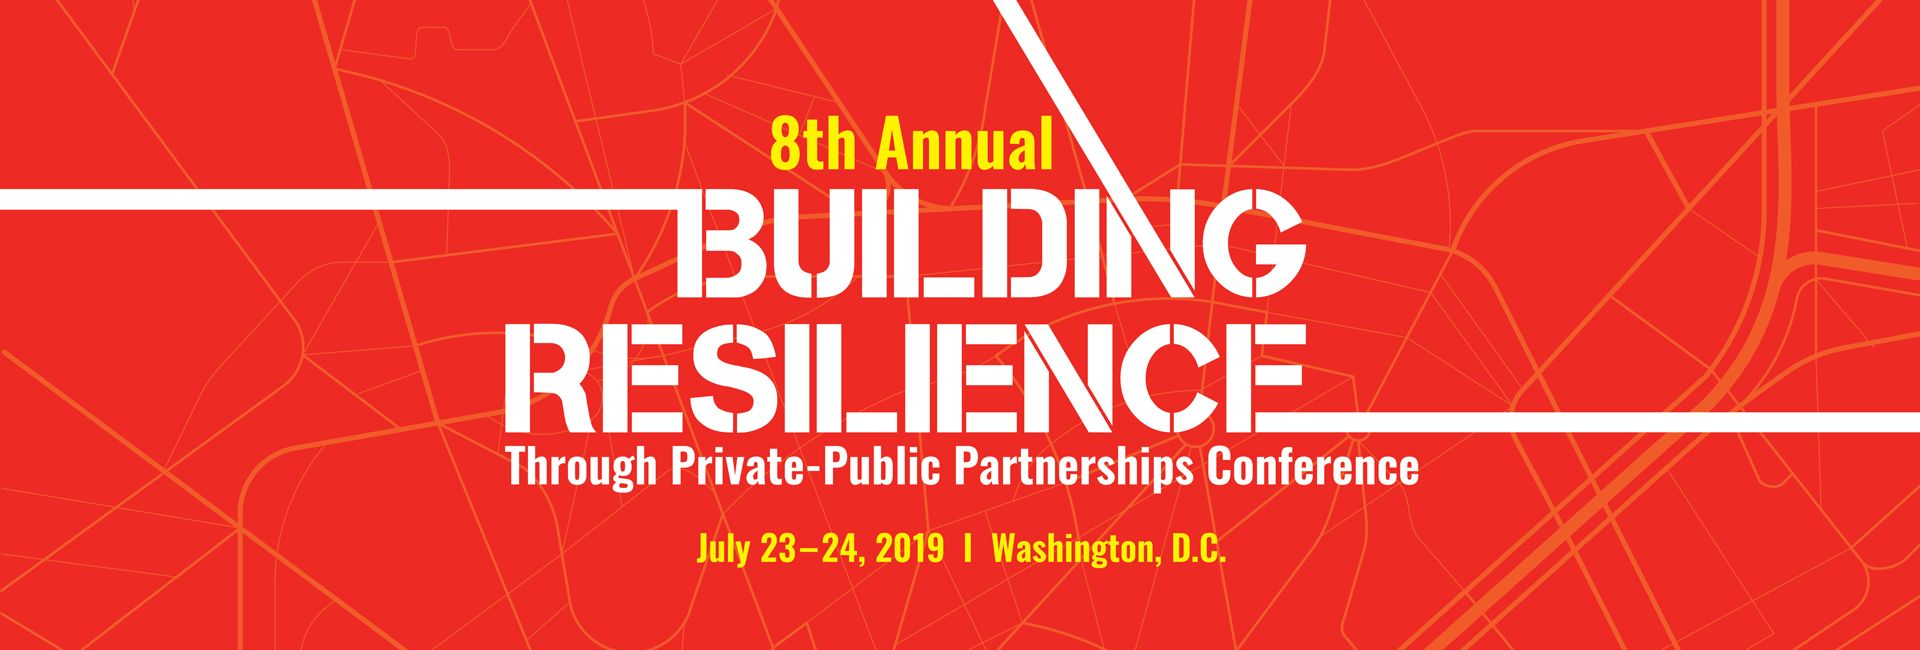 8th Annual Building Resilience through Private-Public Partnerships Conference